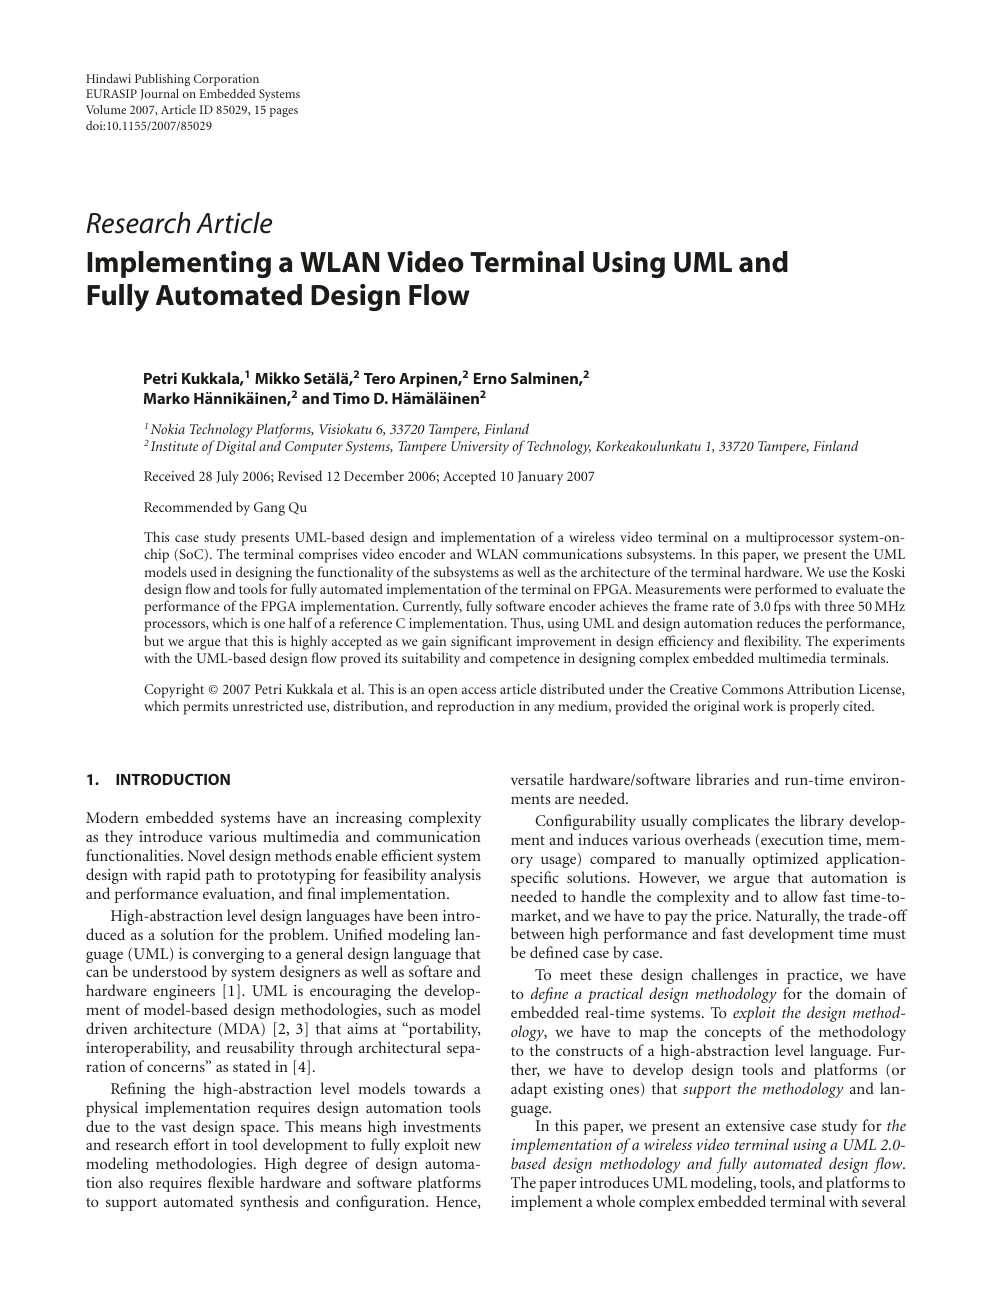 Implementing A Wlan Video Terminal Using Uml And Fully Automated Design Flow Topic Of Research Paper In Electrical Engineering Electronic Engineering Information Engineering Download Scholarly Article Pdf And Read For Free